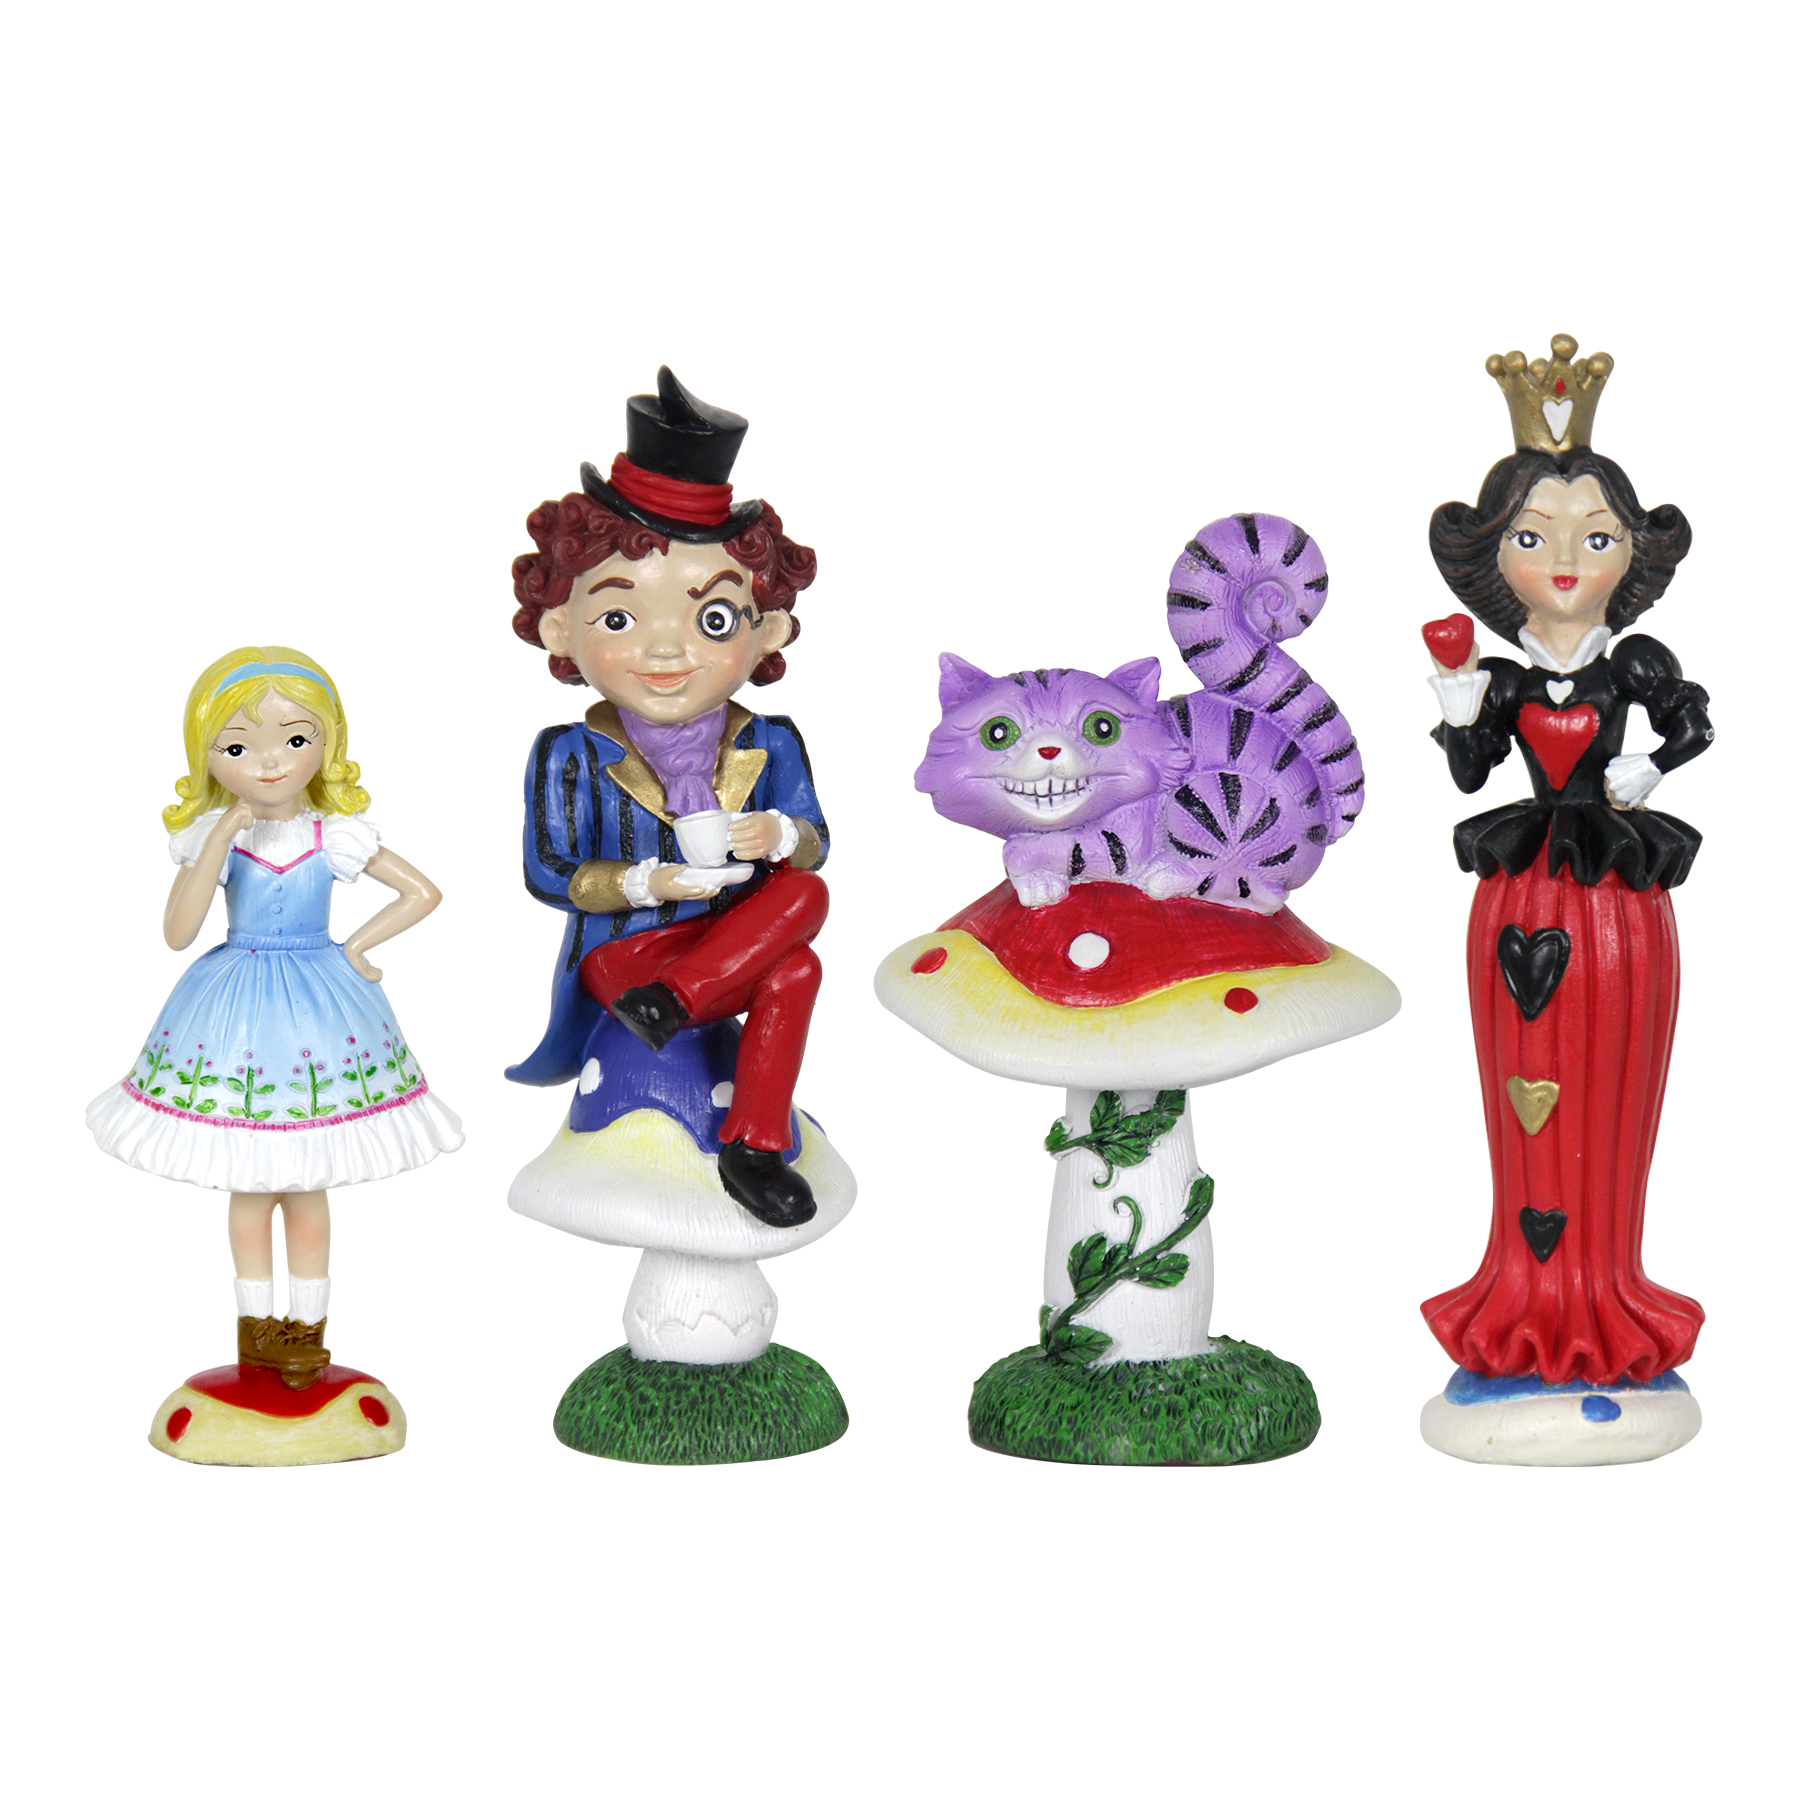 4pc Wonderland Mini Fairy Tale Garden Set